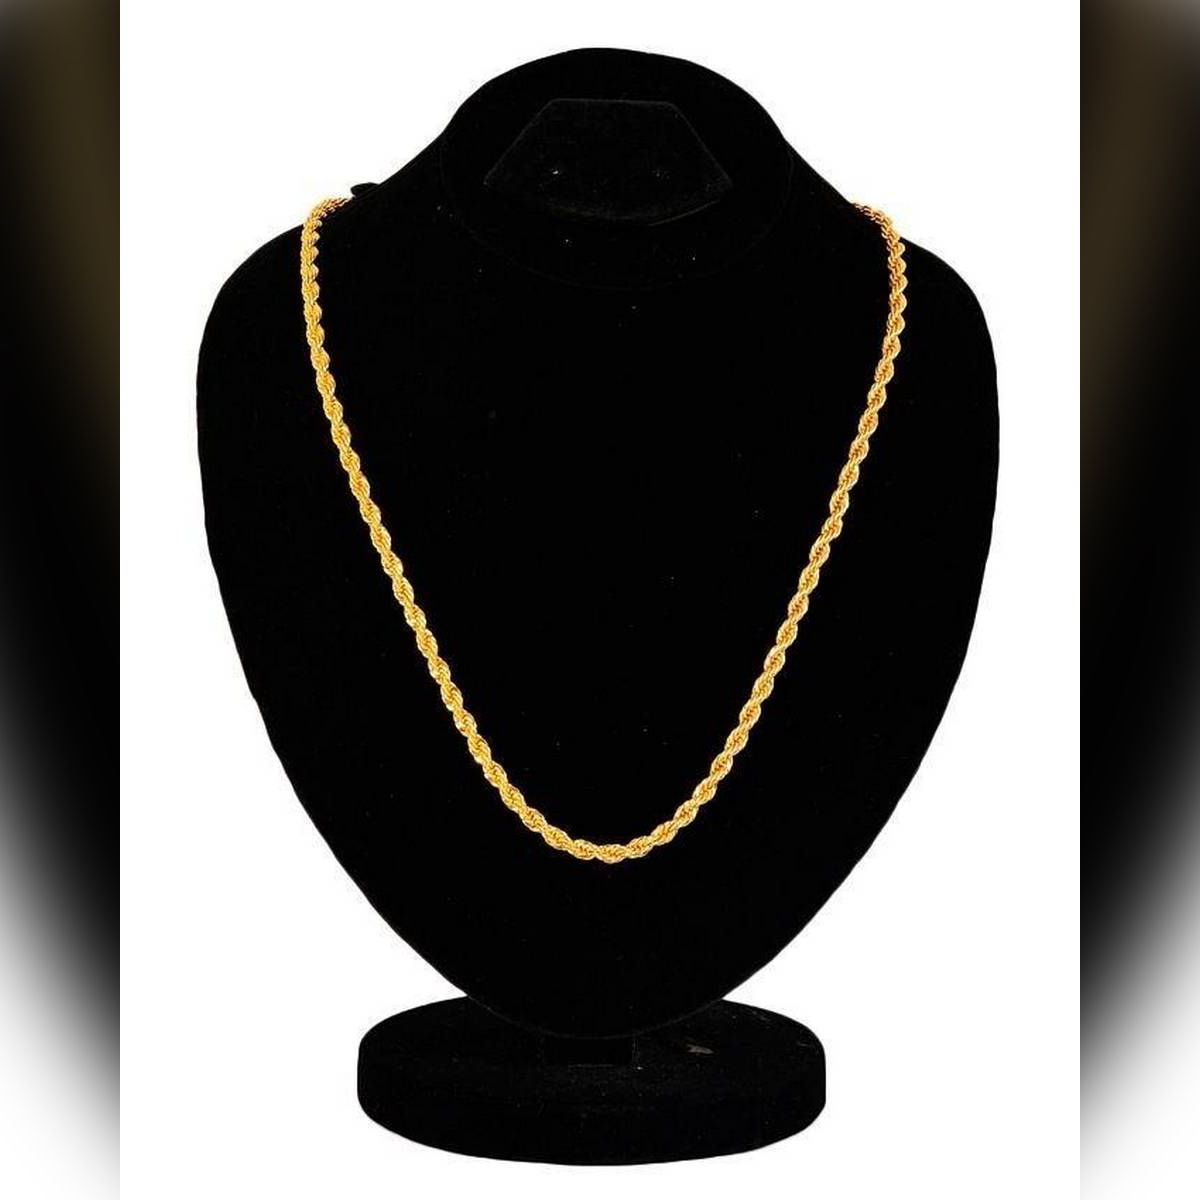 Hi Charlie 18 K Gold Plated on Stainless Steel Chain For Women